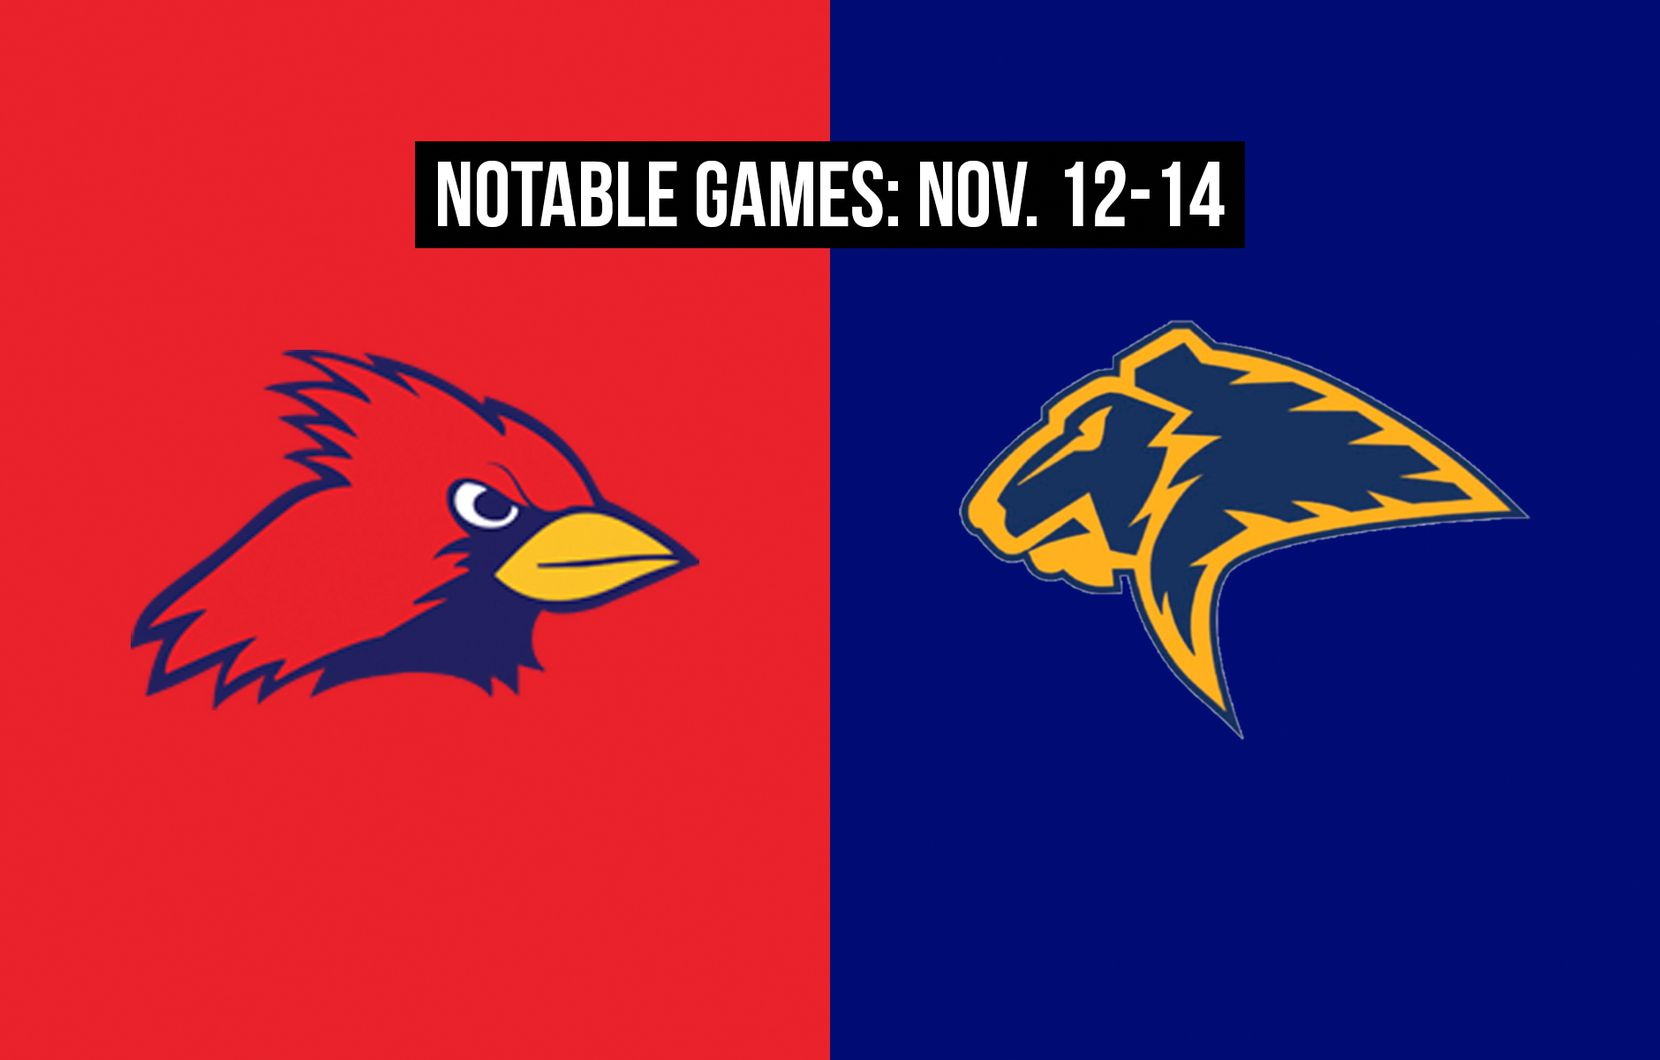 Notable games for the week of Nov. 12-14 of the 2020 season: John Paul II vs. Prestonwood.